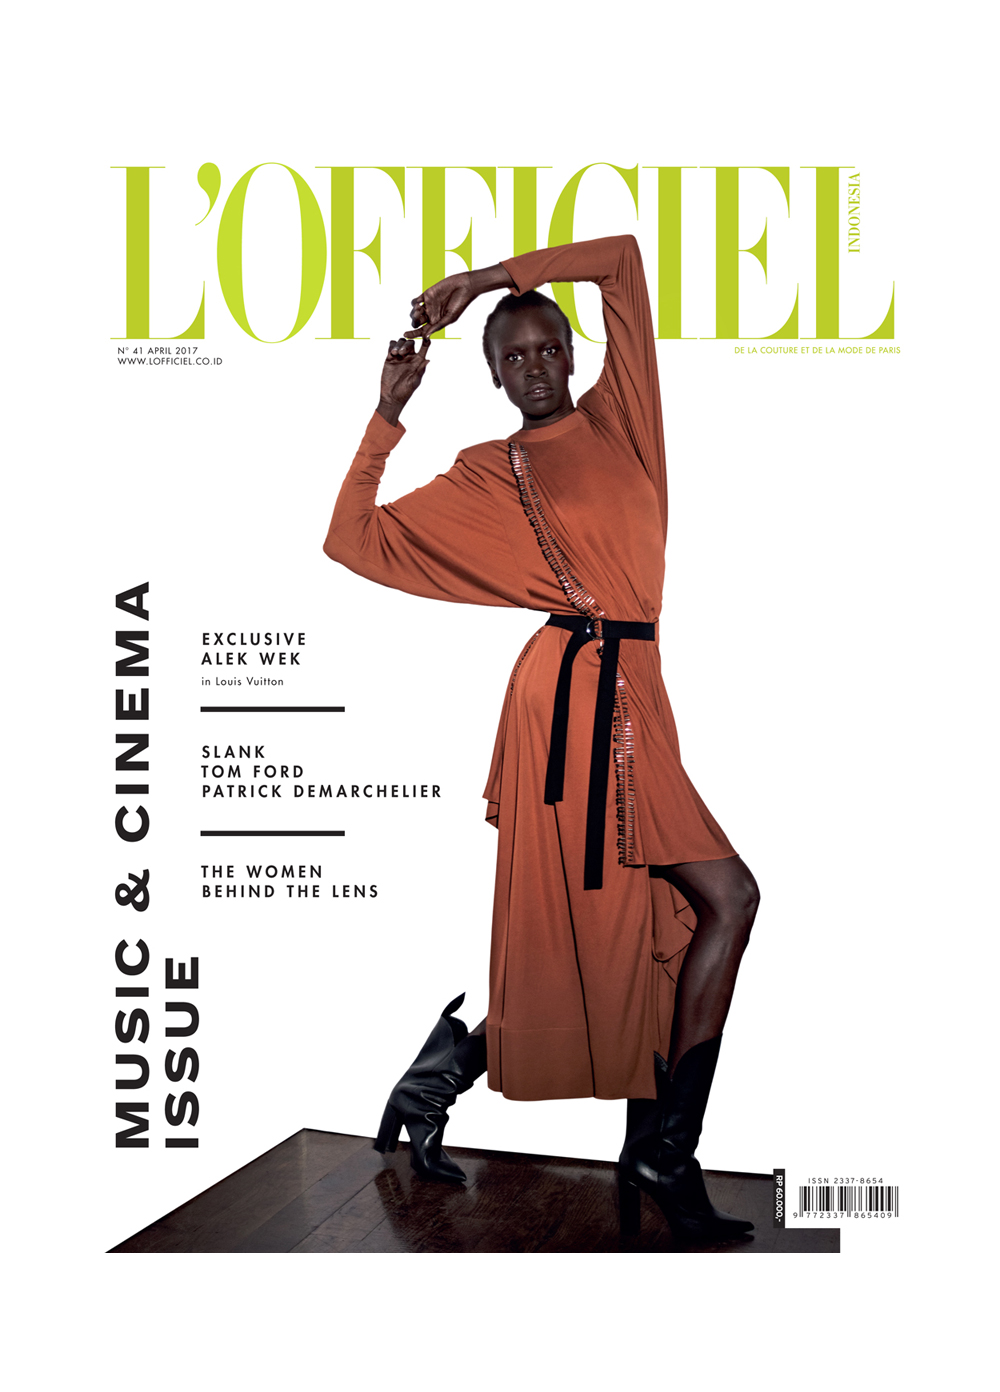 Alek Wek by Onin Lorente for L'Officiel